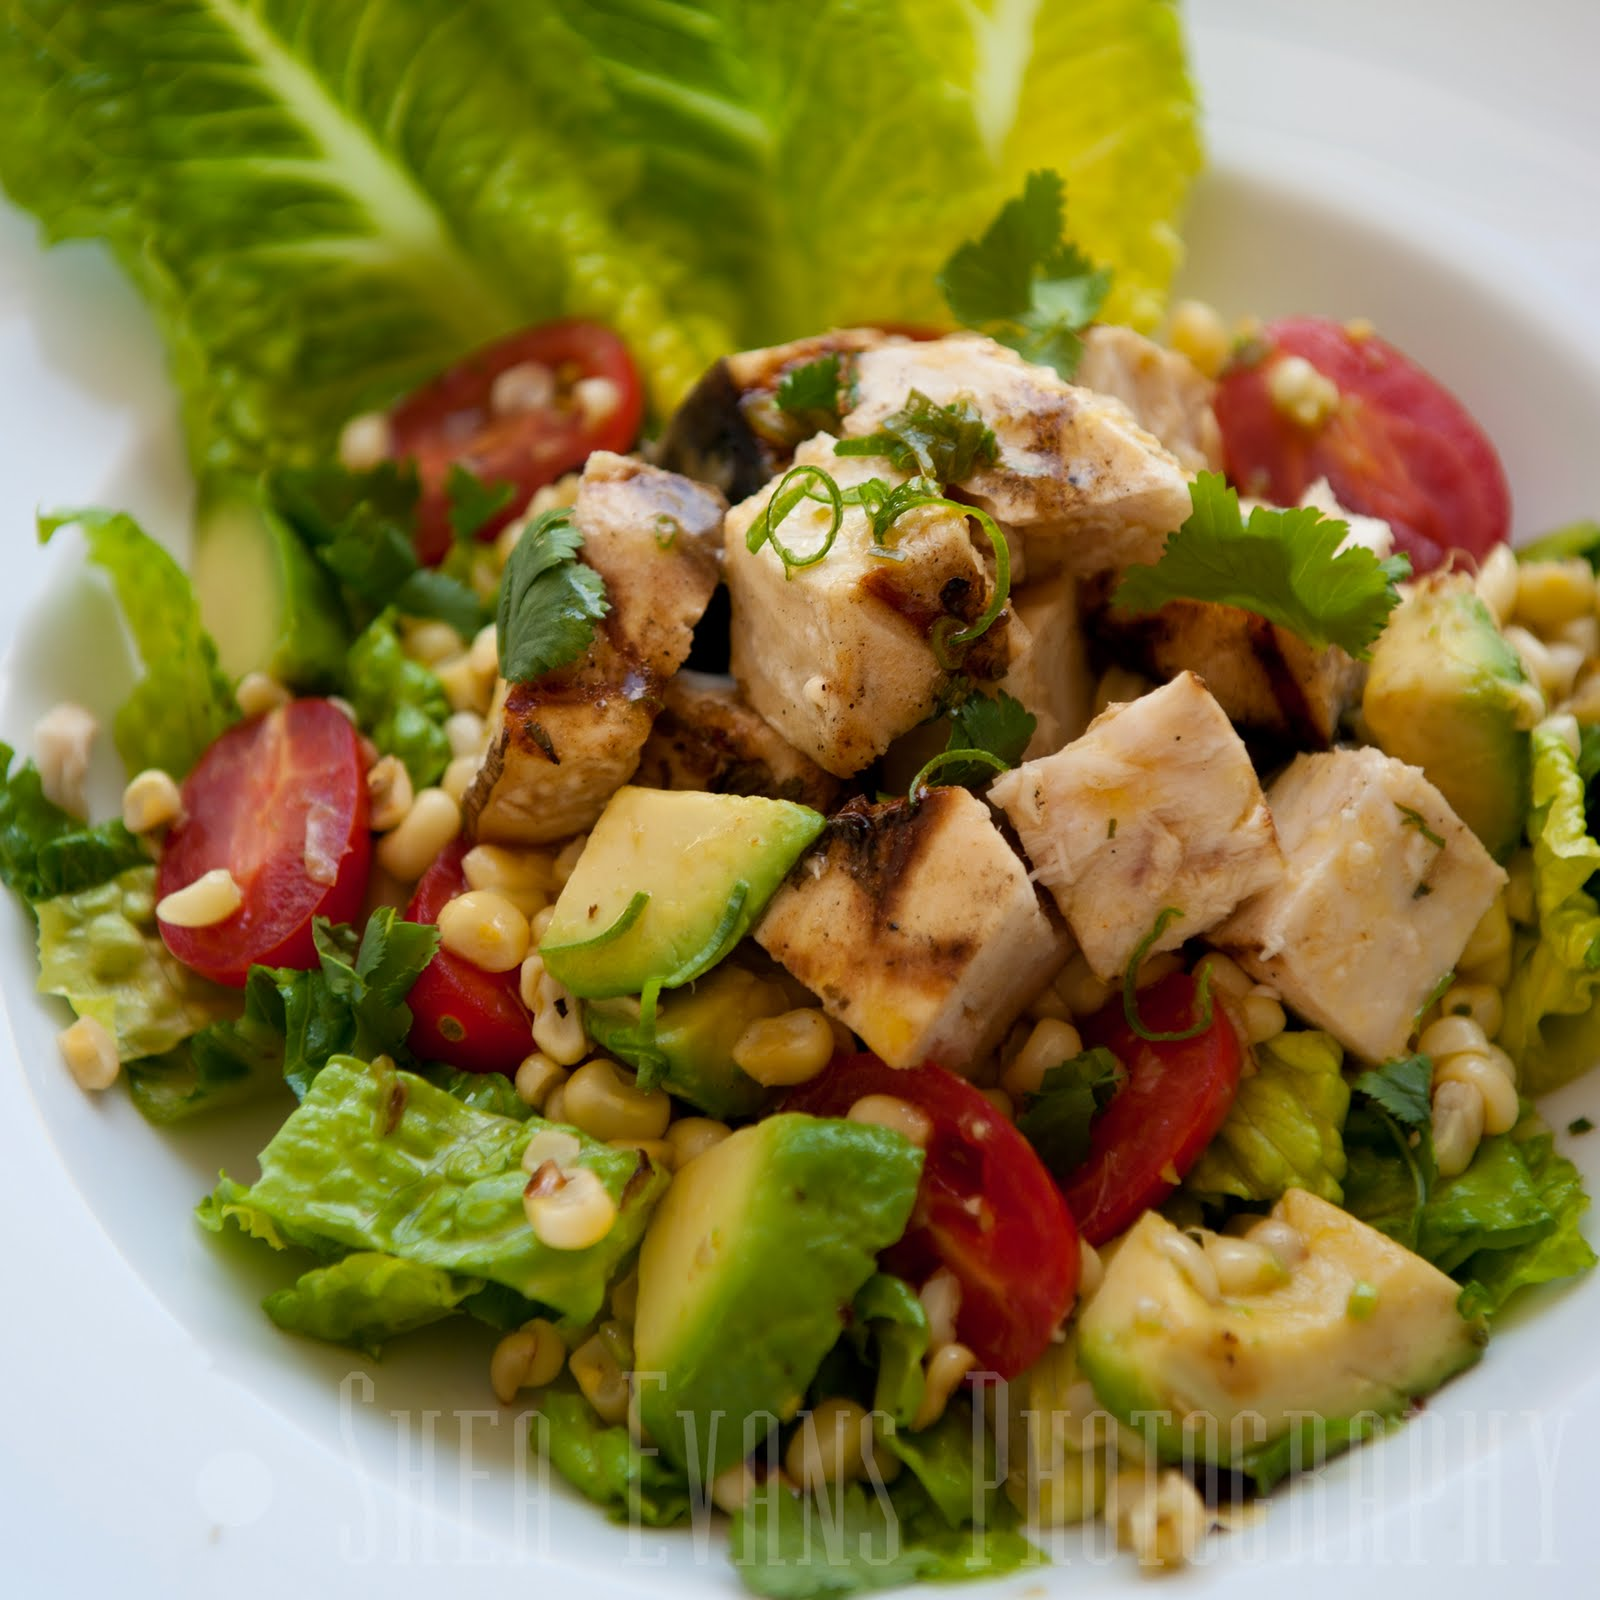 ... Hoover: Grilled Swordfish Salad with Avocado, Corn and Romaine Lettuce